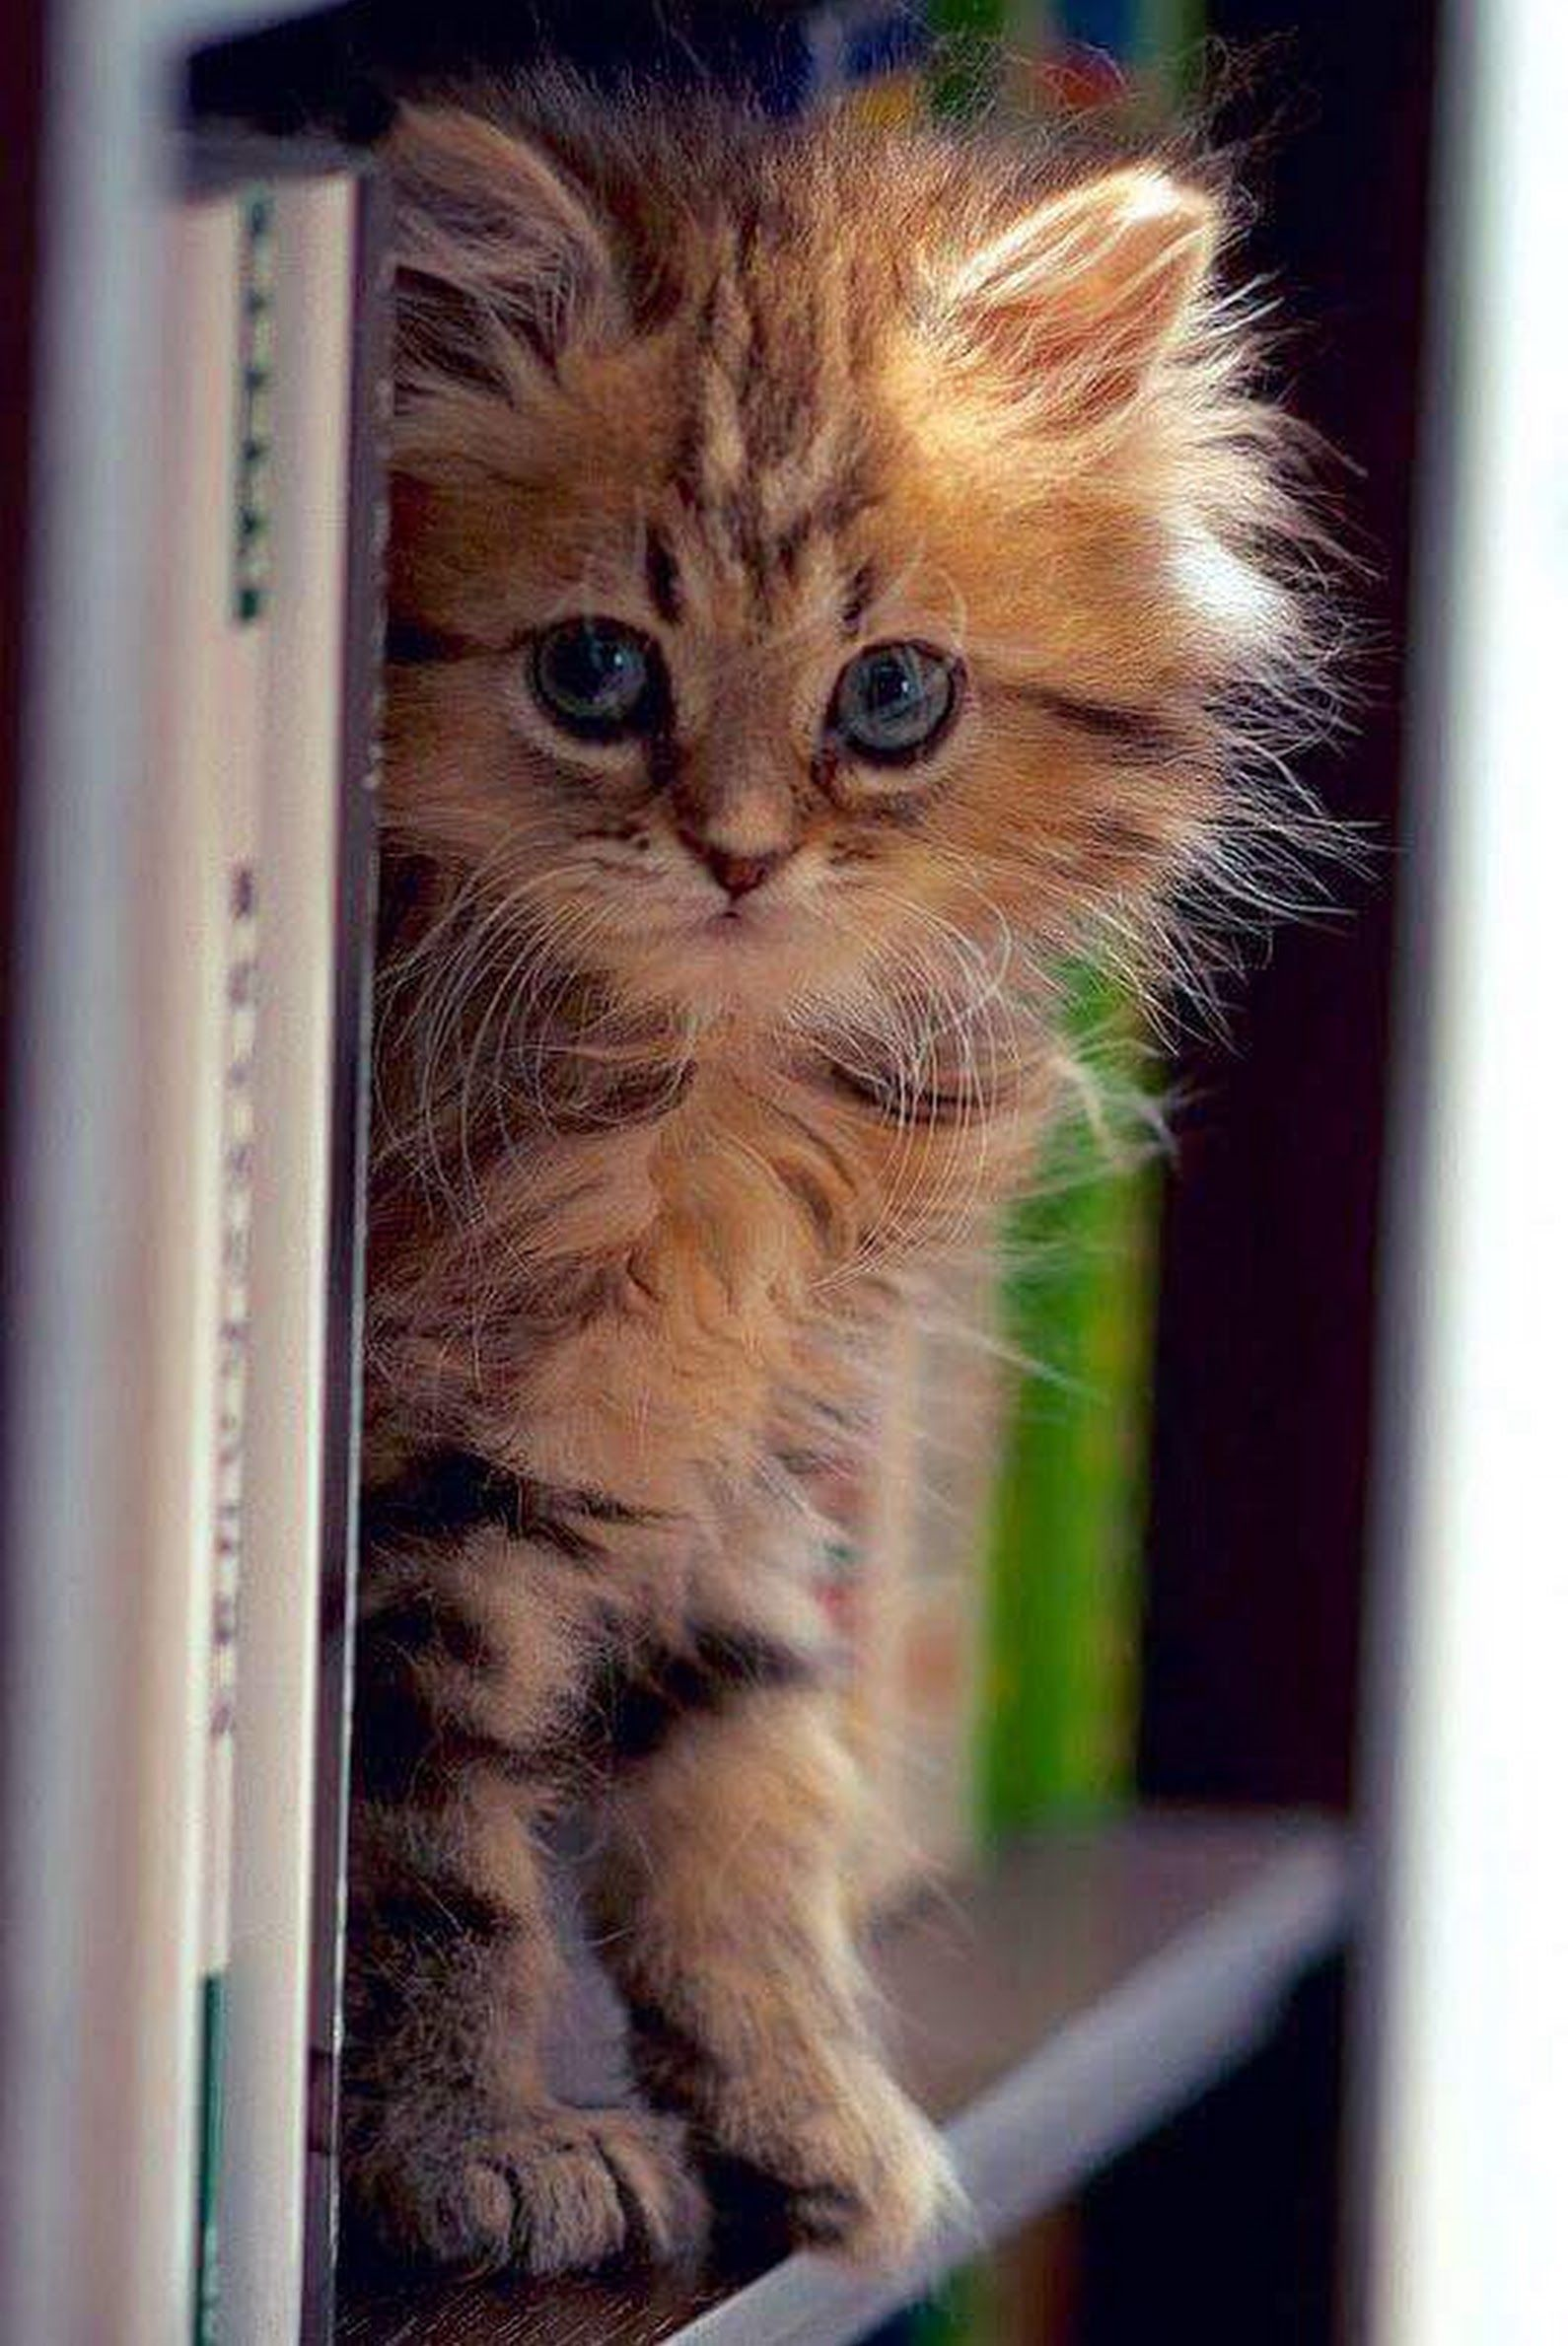 littersolutionscat my cat litter channel is almost here finally ahhhhhhhh pls join me kittens cutest pretty cats cute cats pinterest